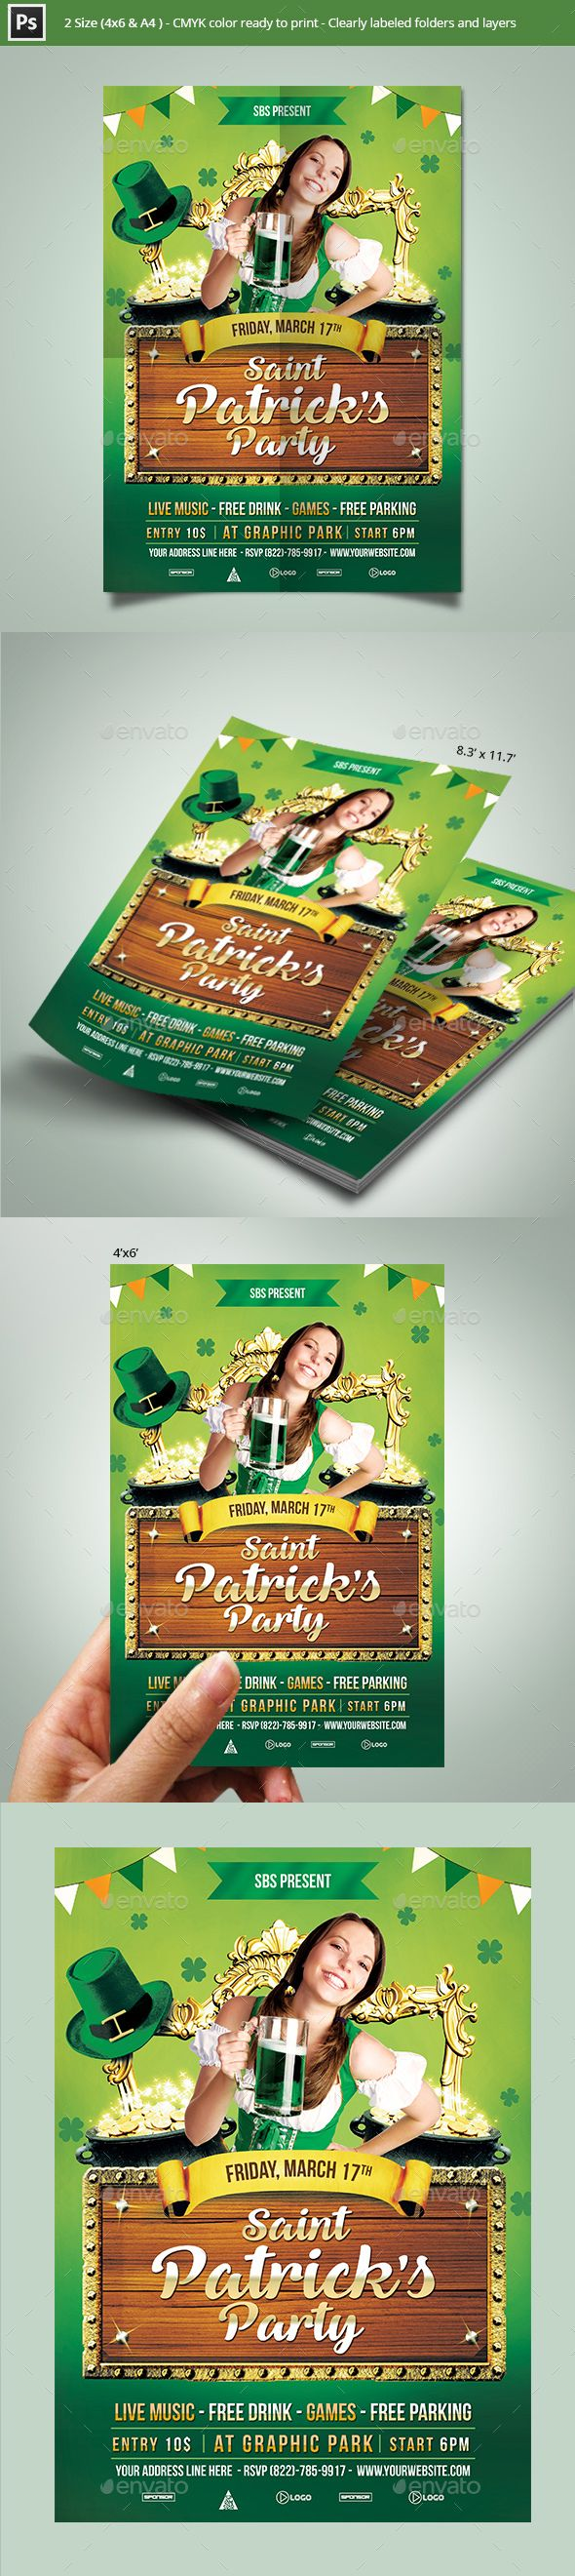 Flyer Samples For An Event St Patrick's Day Party Flyer Template  Flyer Template Party Flyer .